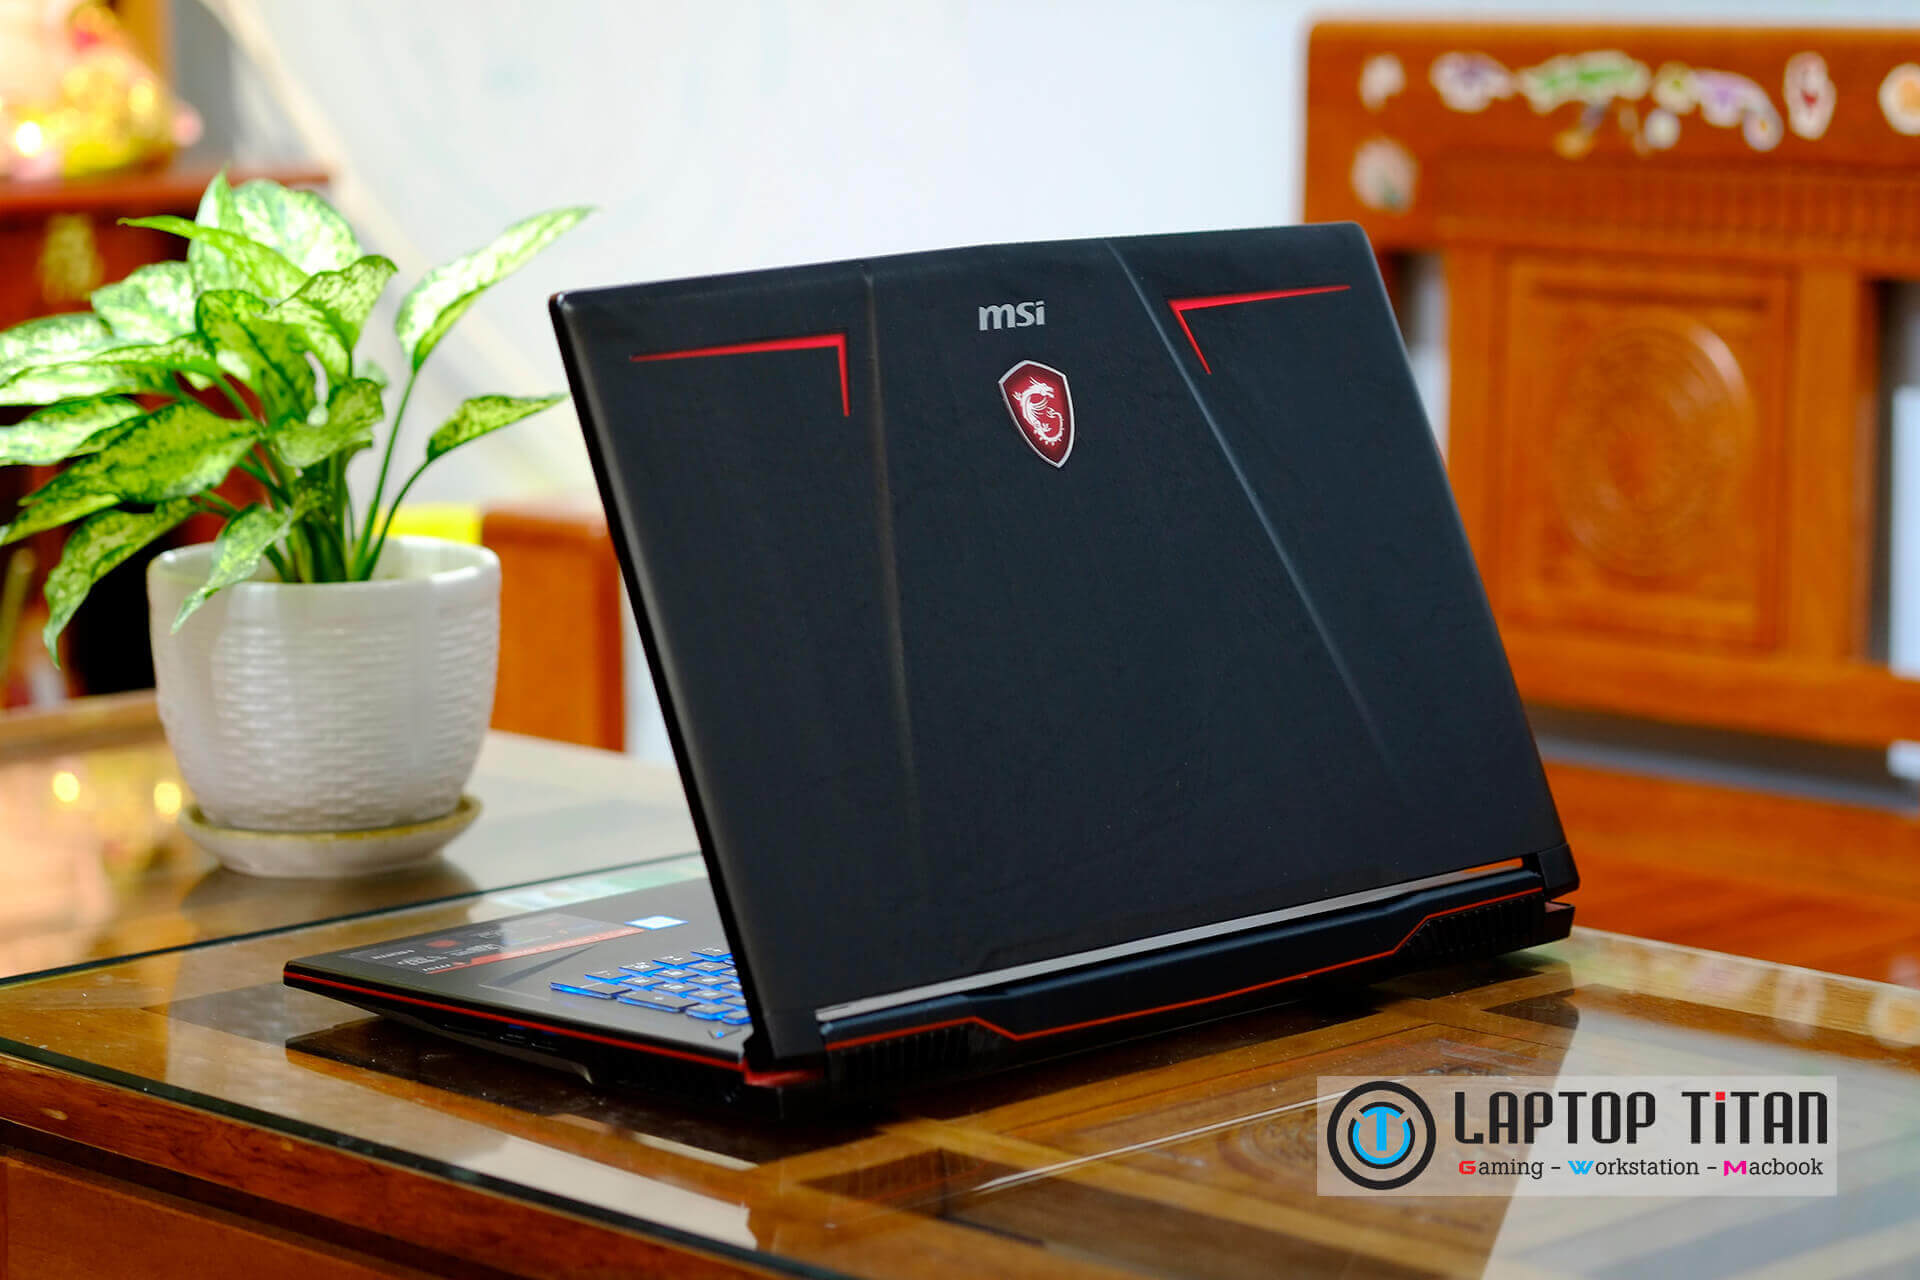 Msi GP73 LaptopTitan 010